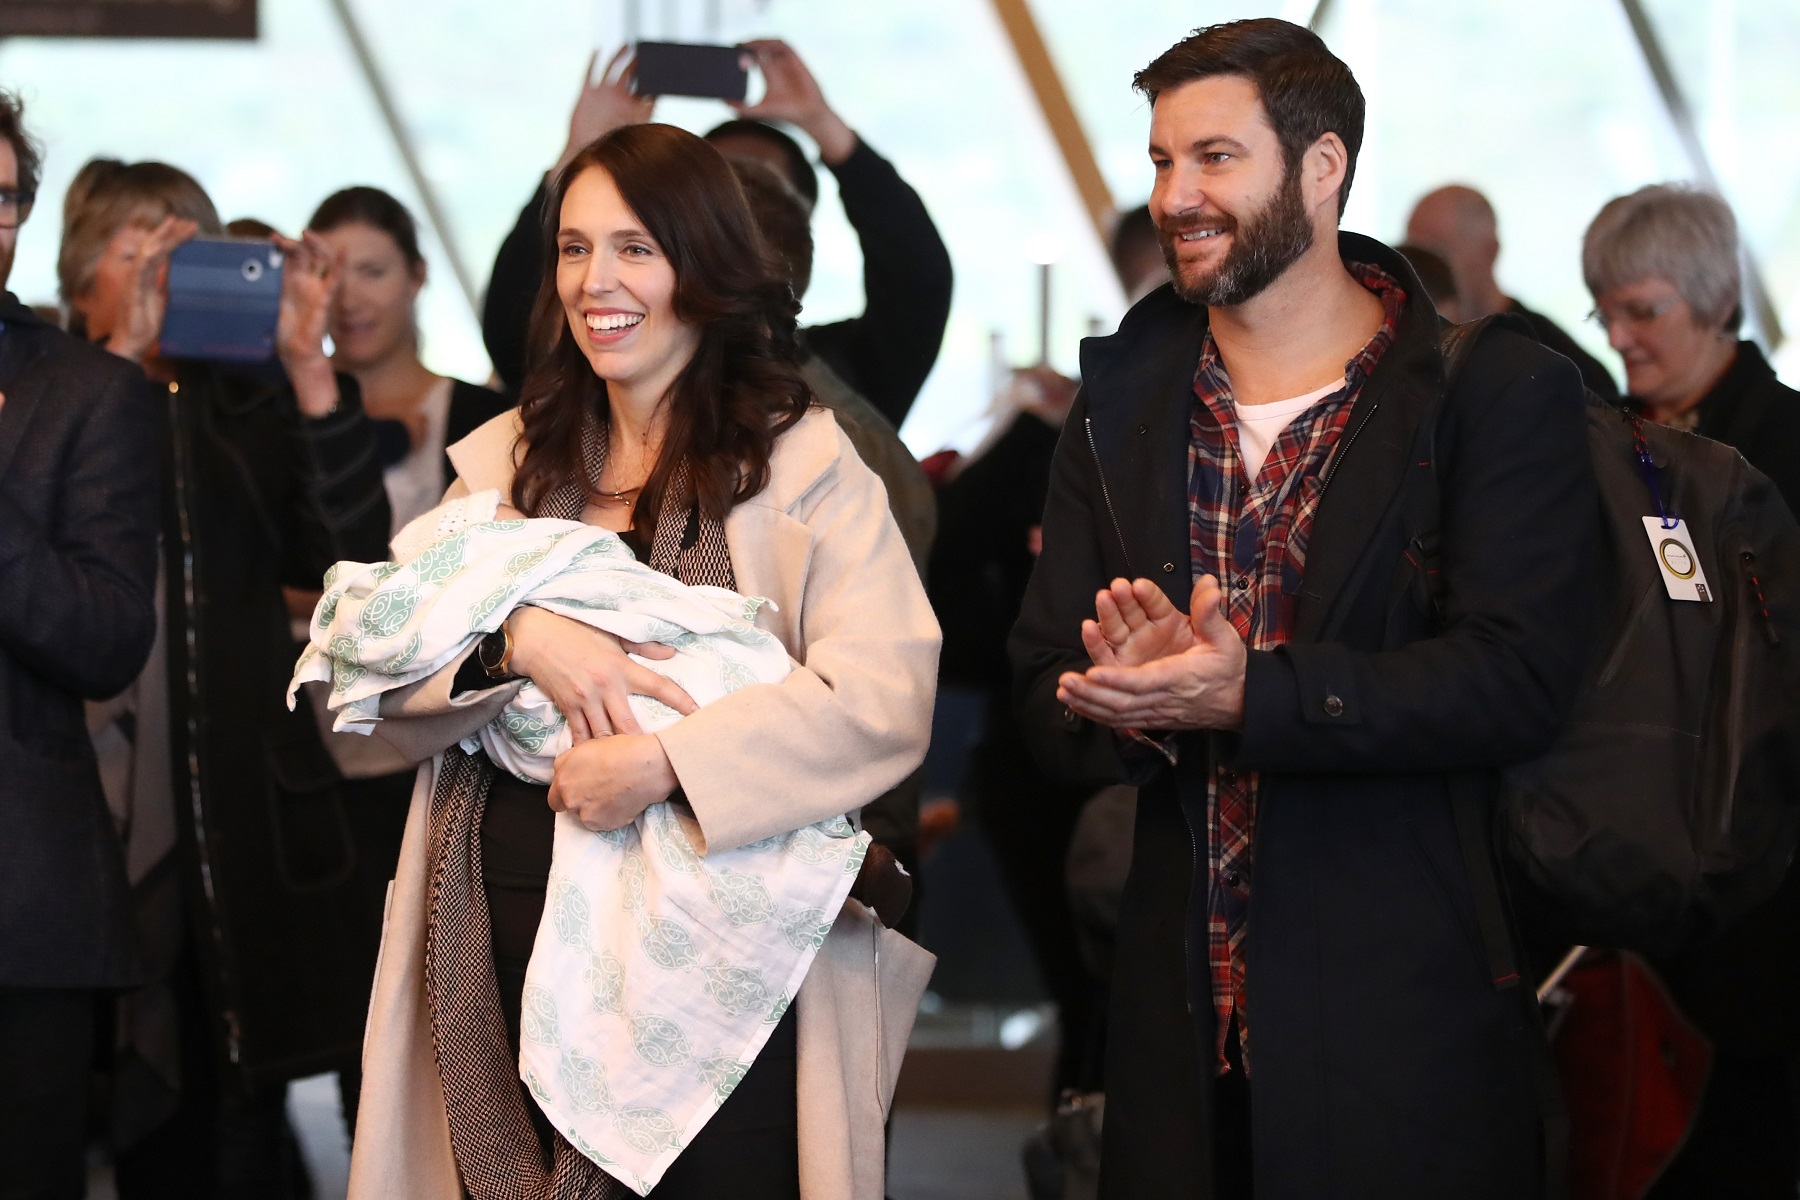 WELLINGTON, NEW ZEALAND - AUGUST 04:  New Zealand Prime Minister Jacinda Ardern arrives at Wellington Airport with her partner Clarke Gayford and their daughter Neve Gayford on August 4, 2018 in Wellington, New Zealand. Prime Minister Ardern and her partner Glarke Gayford welcomed their daughter Neve on 21 June 2018. Prime Minister Ardern is the second world leader to give birth in office, and the first elected leader to take maternity leave.  (Photo by Hannah Peters/Getty Images)